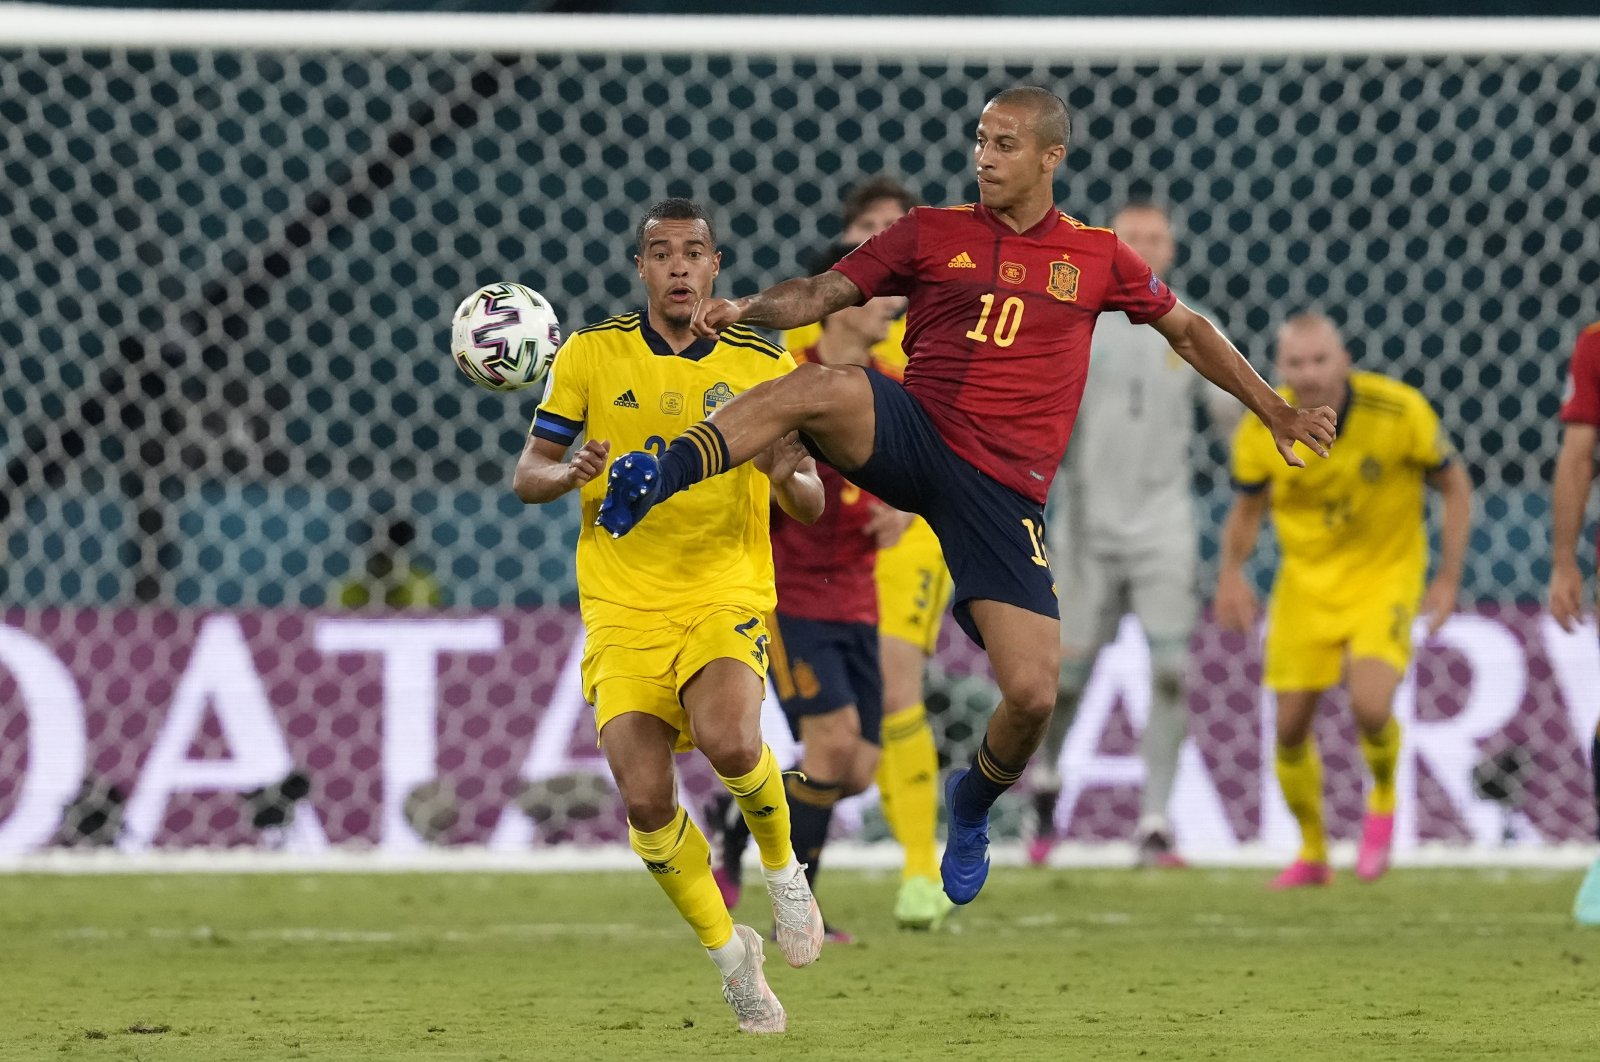 Sweden's Kristoffer Olsson (L) challenges Spain's Thiago for the ball during the Euro 2020 Group E match at La Cartuja stadium in Seville, Spain, June 14, 2021. (AP Photo)